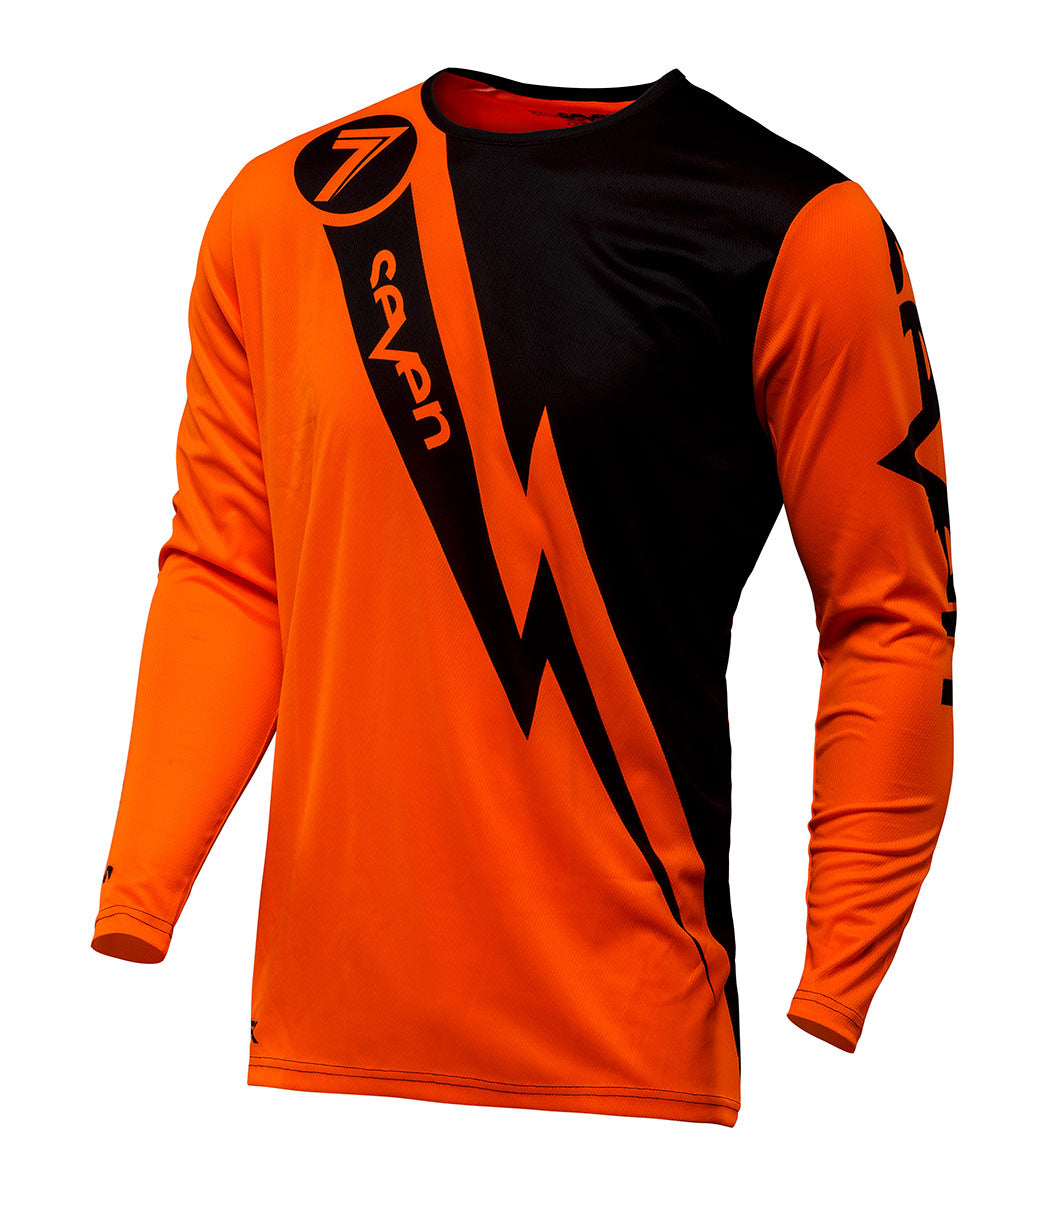 Annex Volt Jersey - Flo Orange